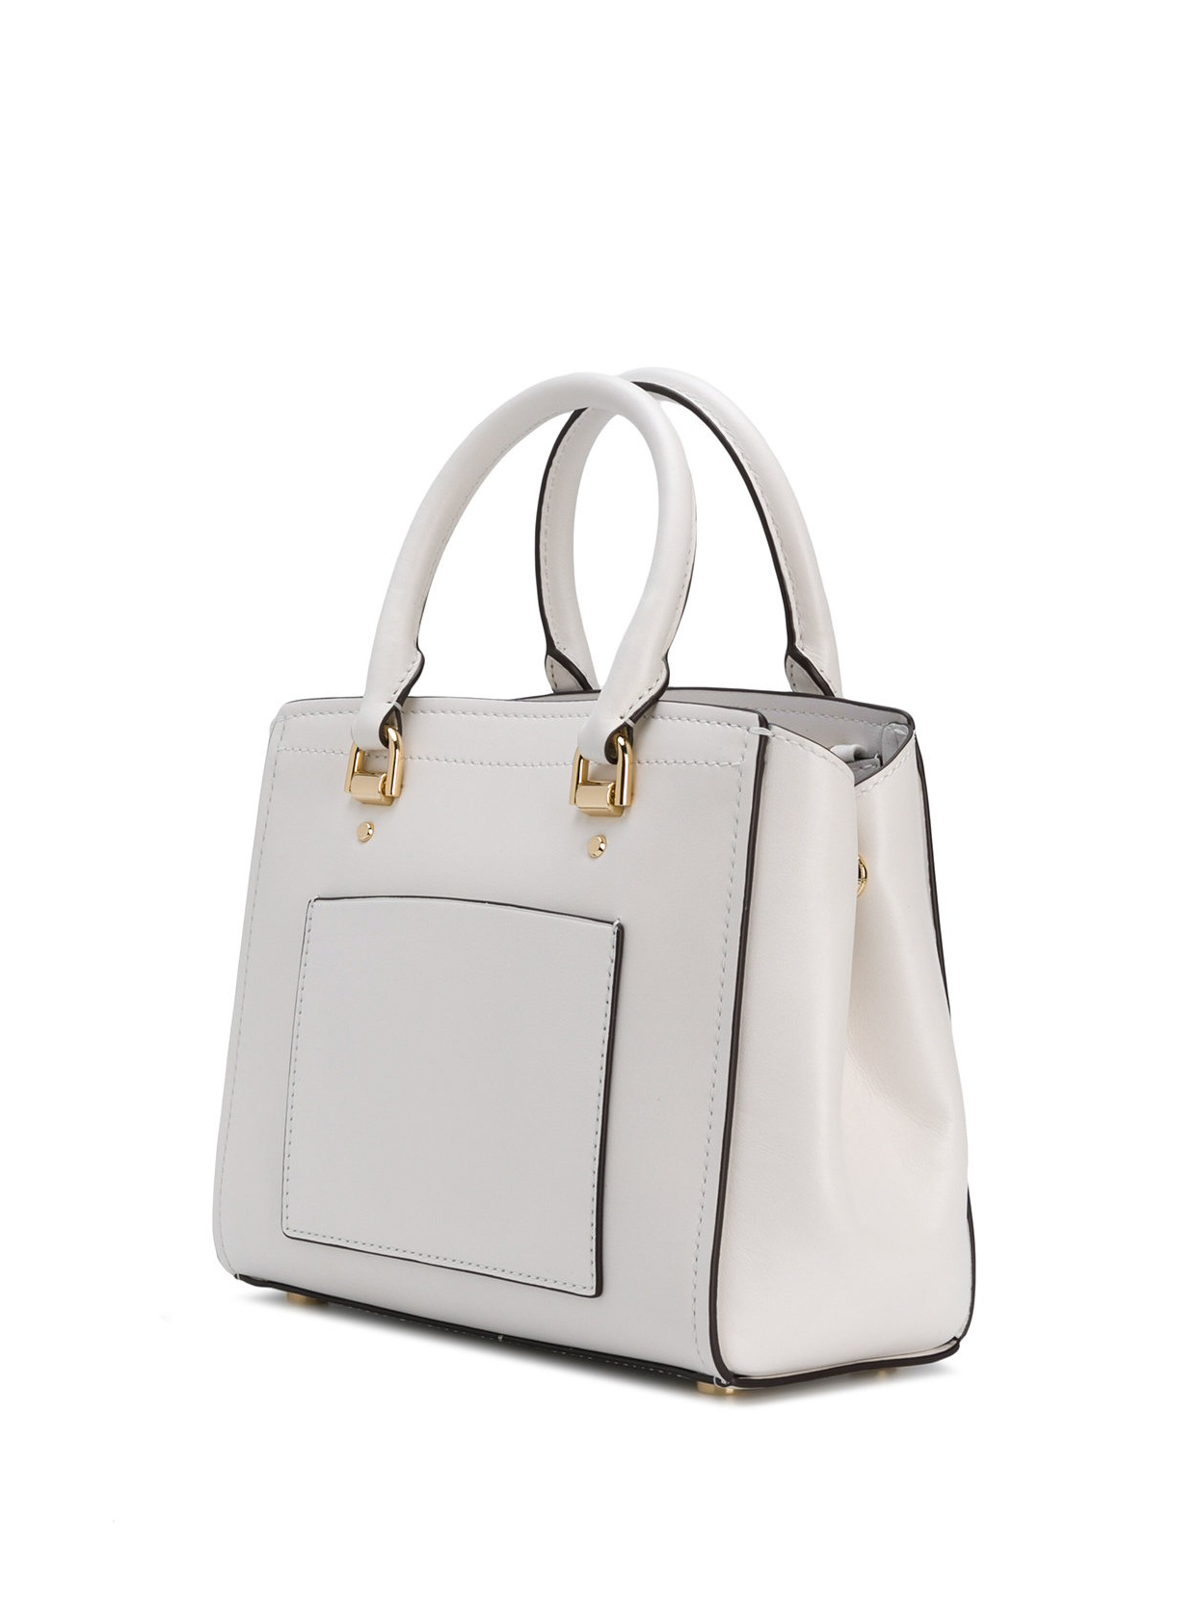 How to Use a Michael Kors Coupon Code Online. Select size, color, and quantity of item, then click